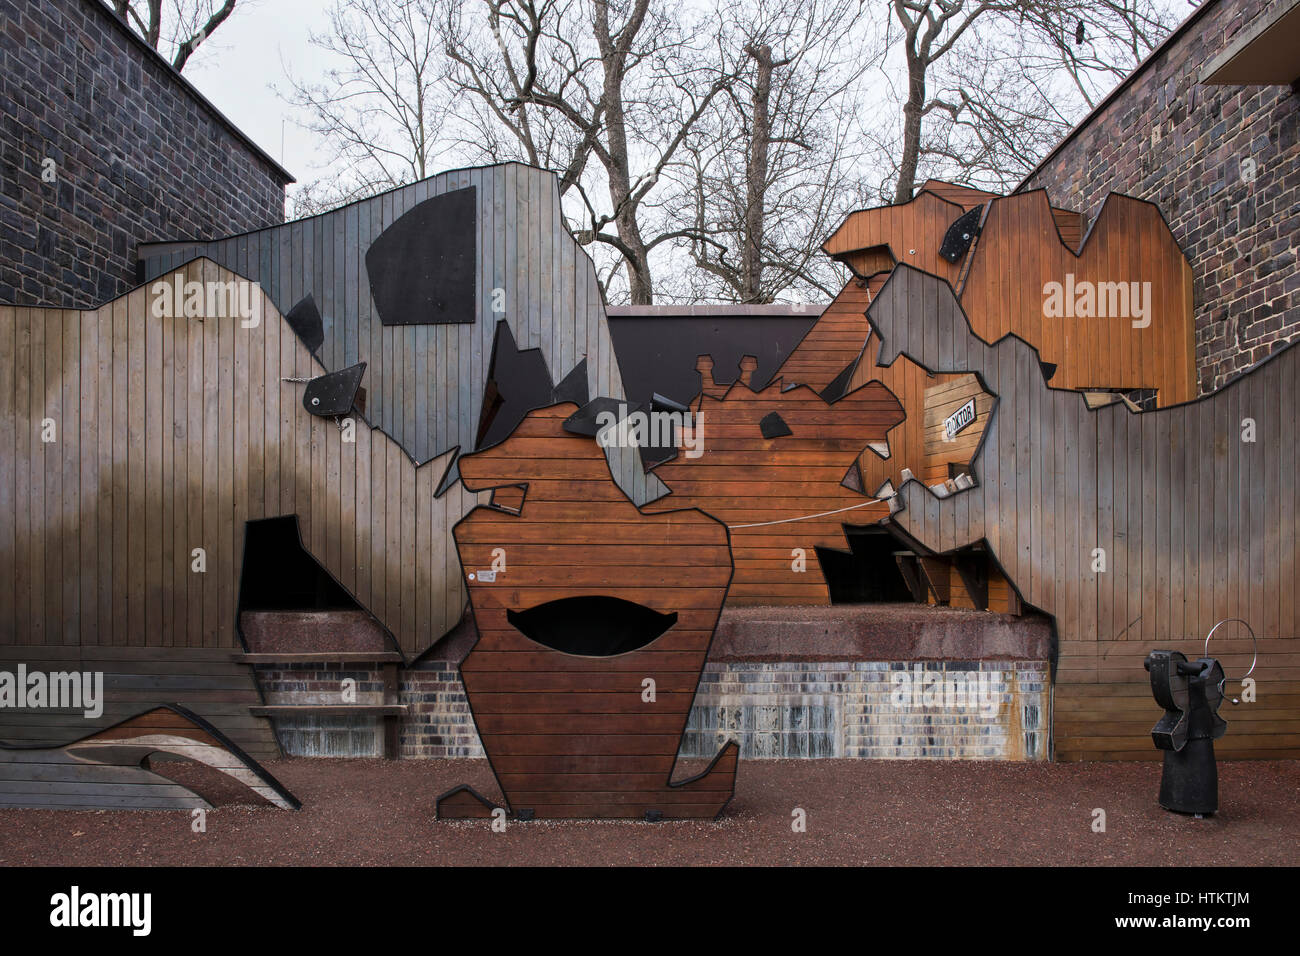 Creative outdoor playground made of artistically designed wood in the form of animals. Leipzig Zoological Garden, Stock Photo